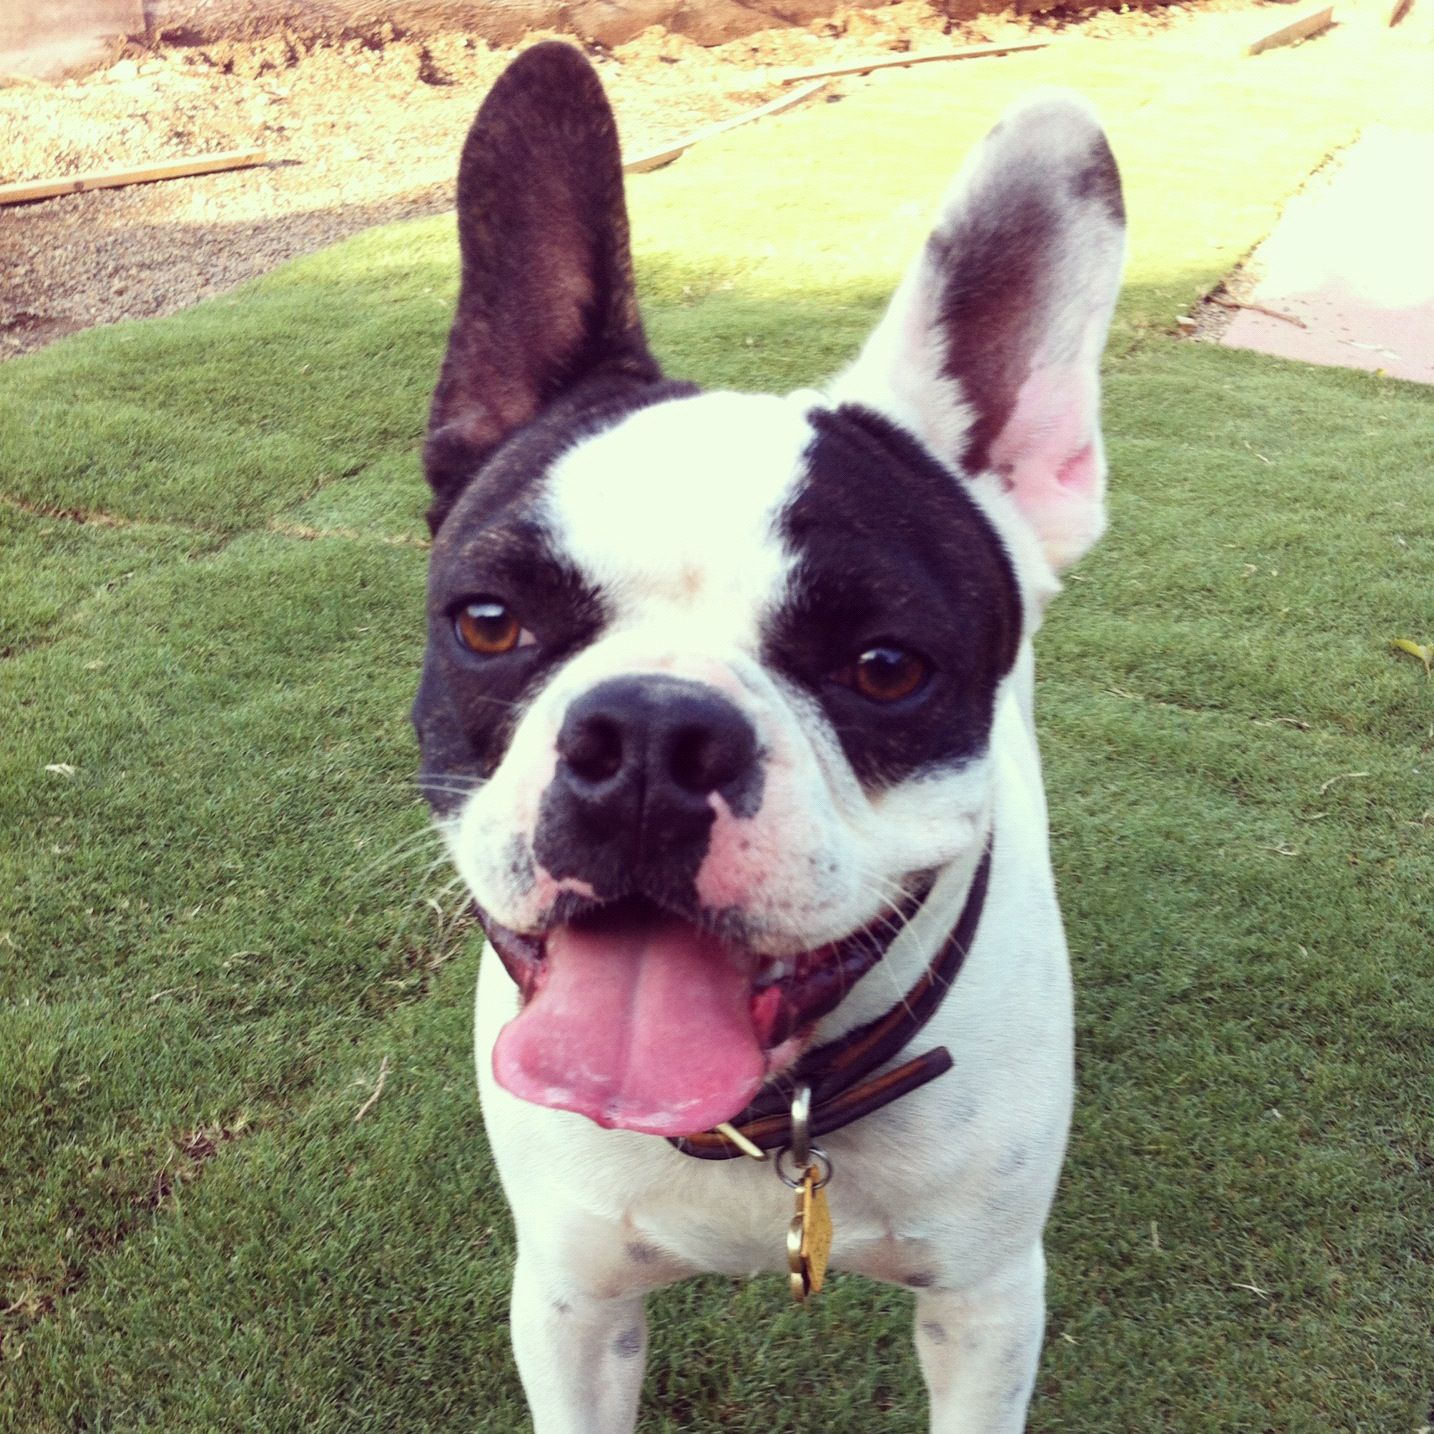 This Is A Frenchton A French Bulldog And Boston Terrier Mix Puppy And 100 Gorgeous Pitbull Terrier Bull Terrier Dog Terrier